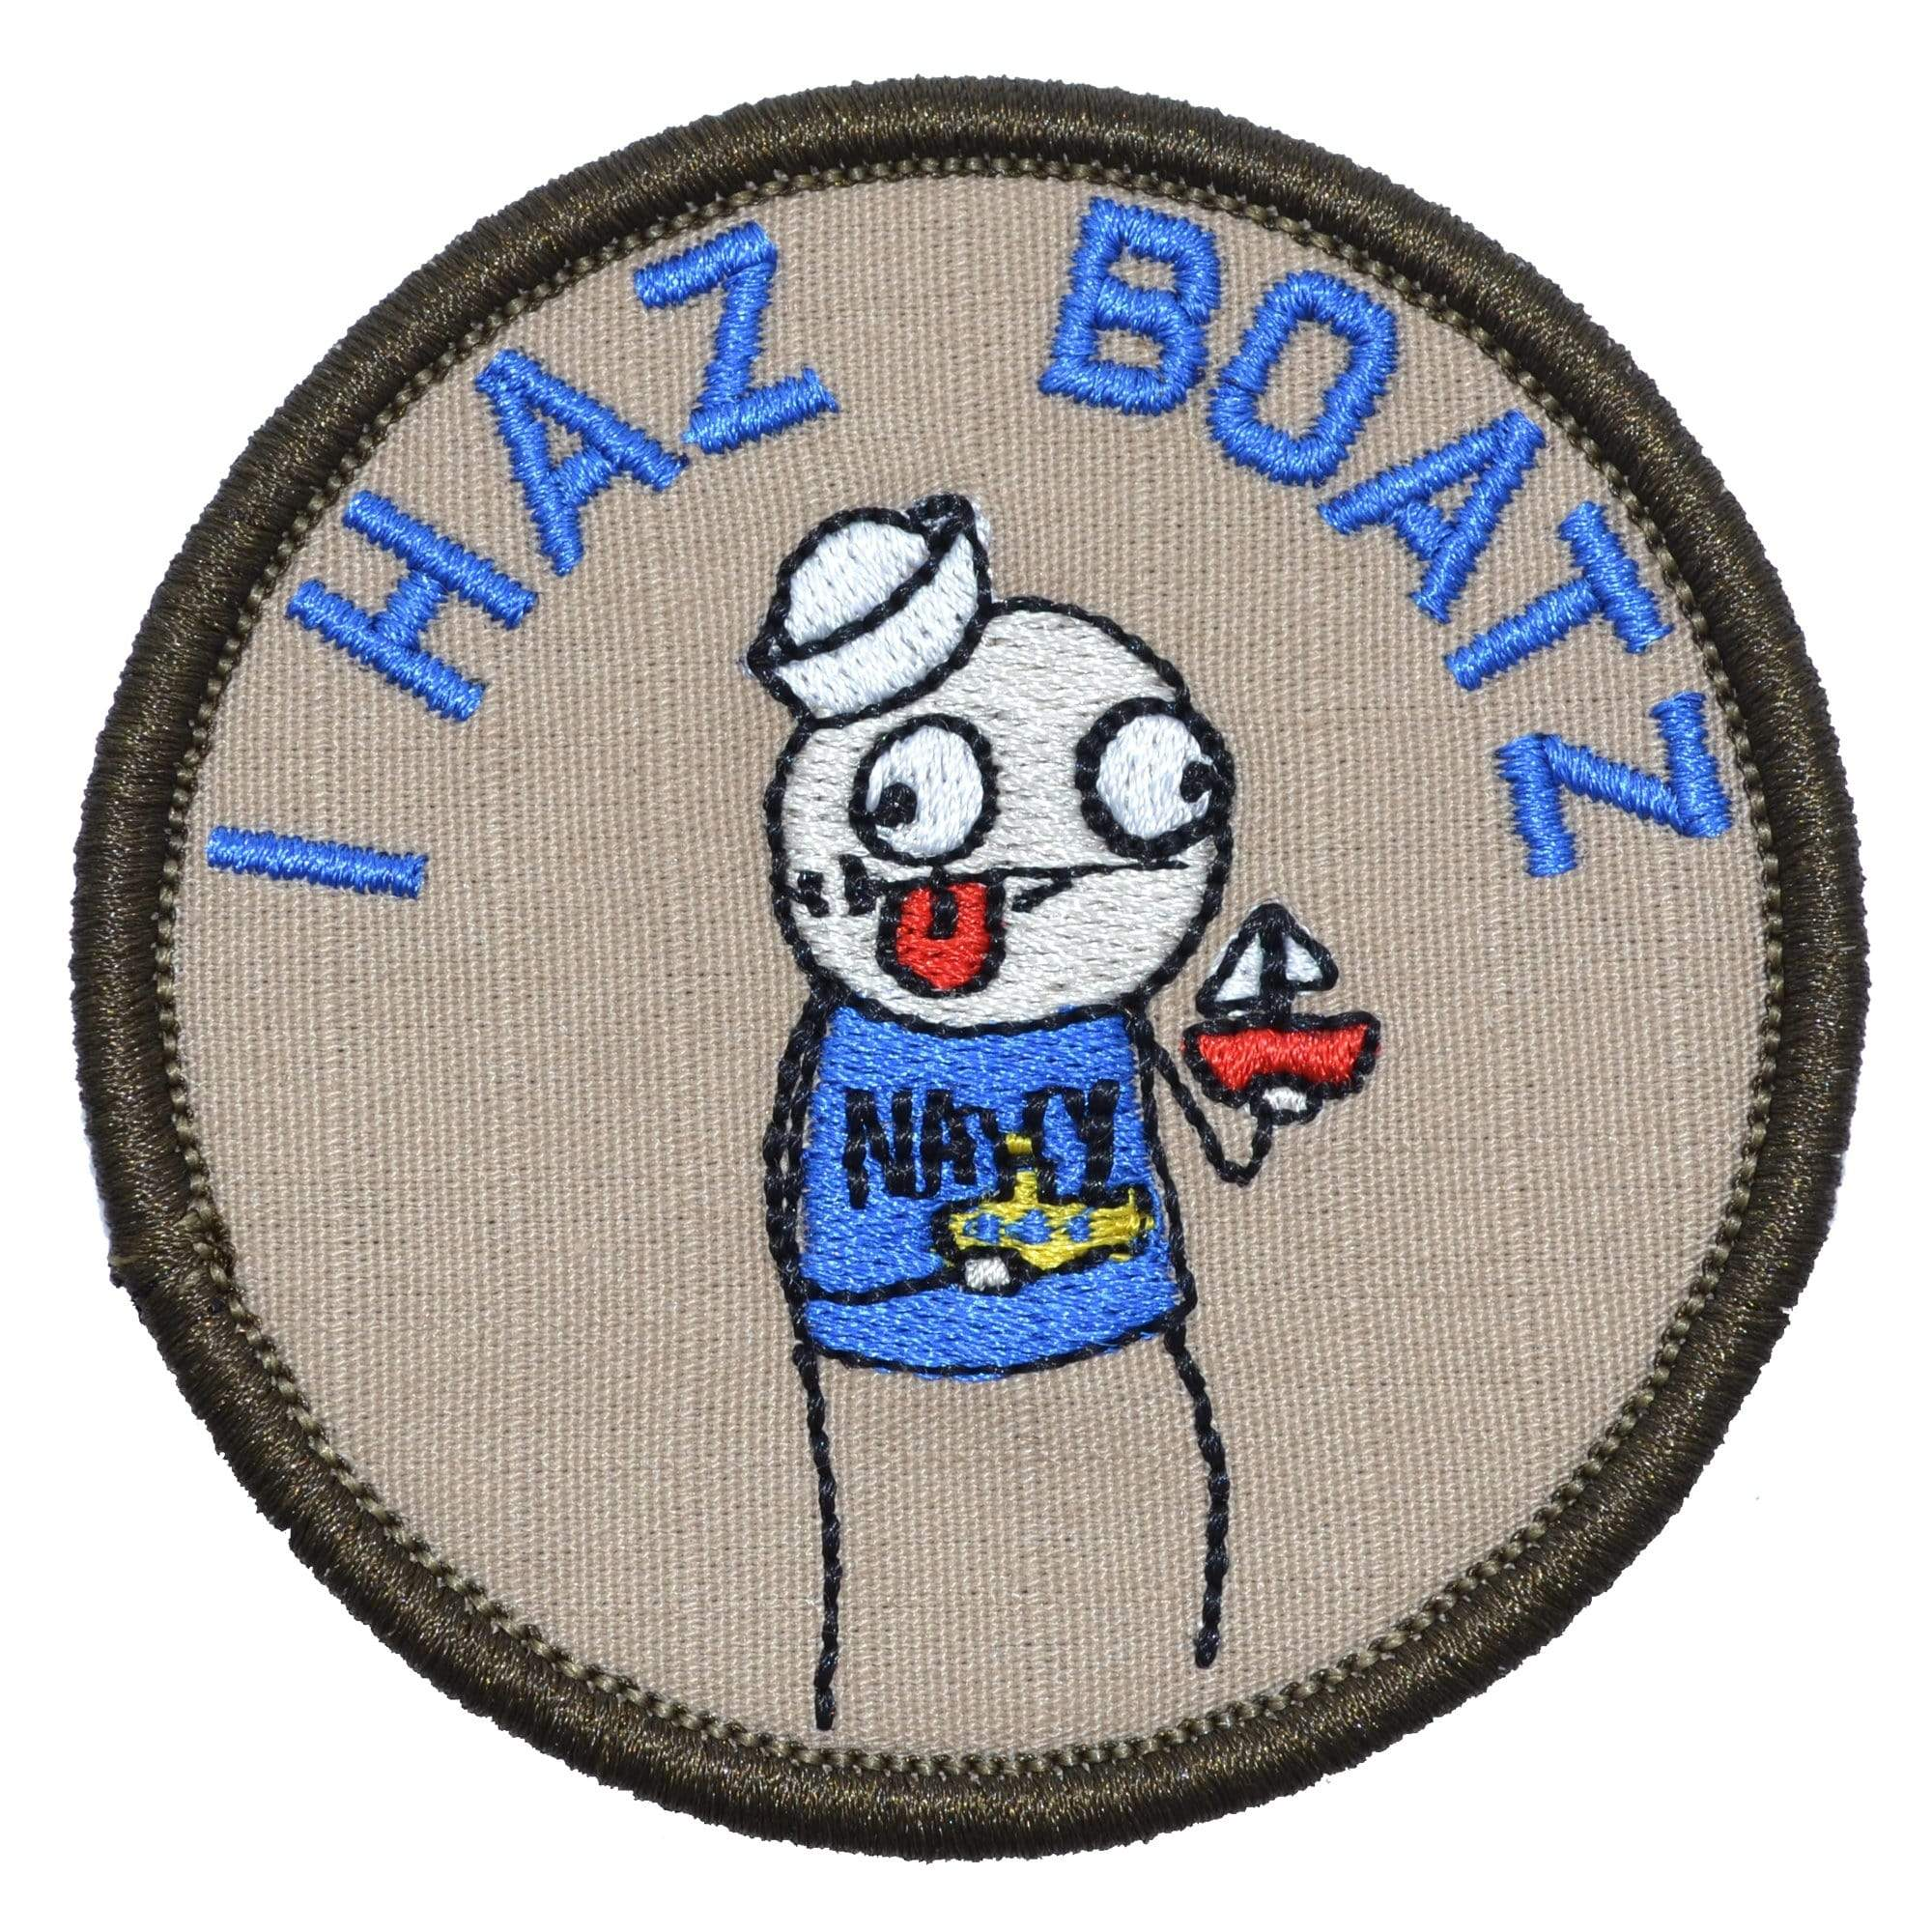 "Sketch's World © US Navy ""I Haz Boatz"" - 3.5 in Round Patch"